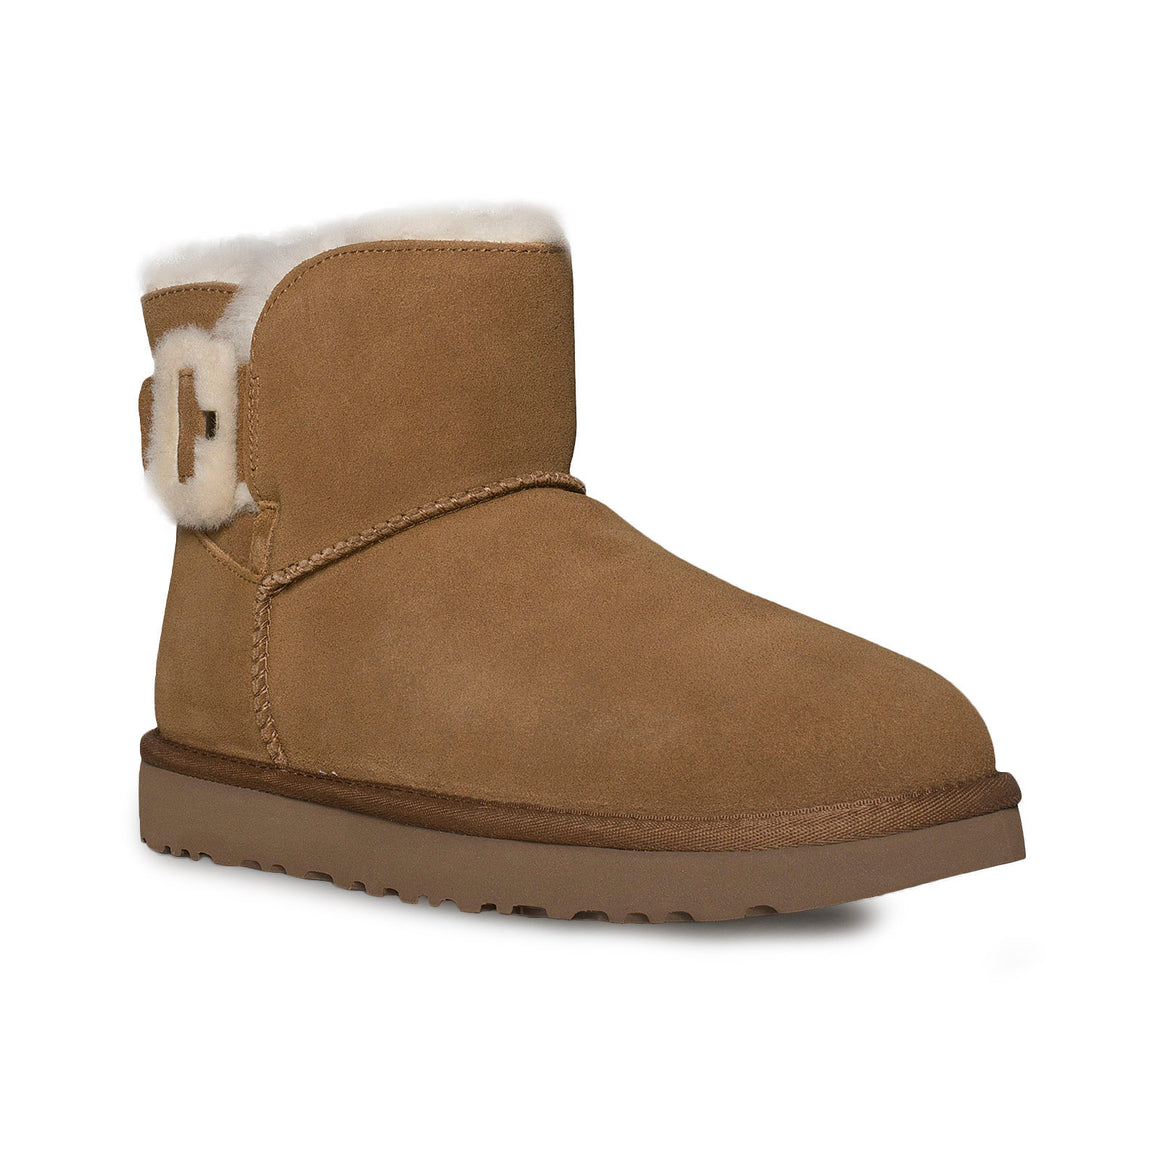 UGG Mini Fluff Buckle Chestnut Boots - Women's